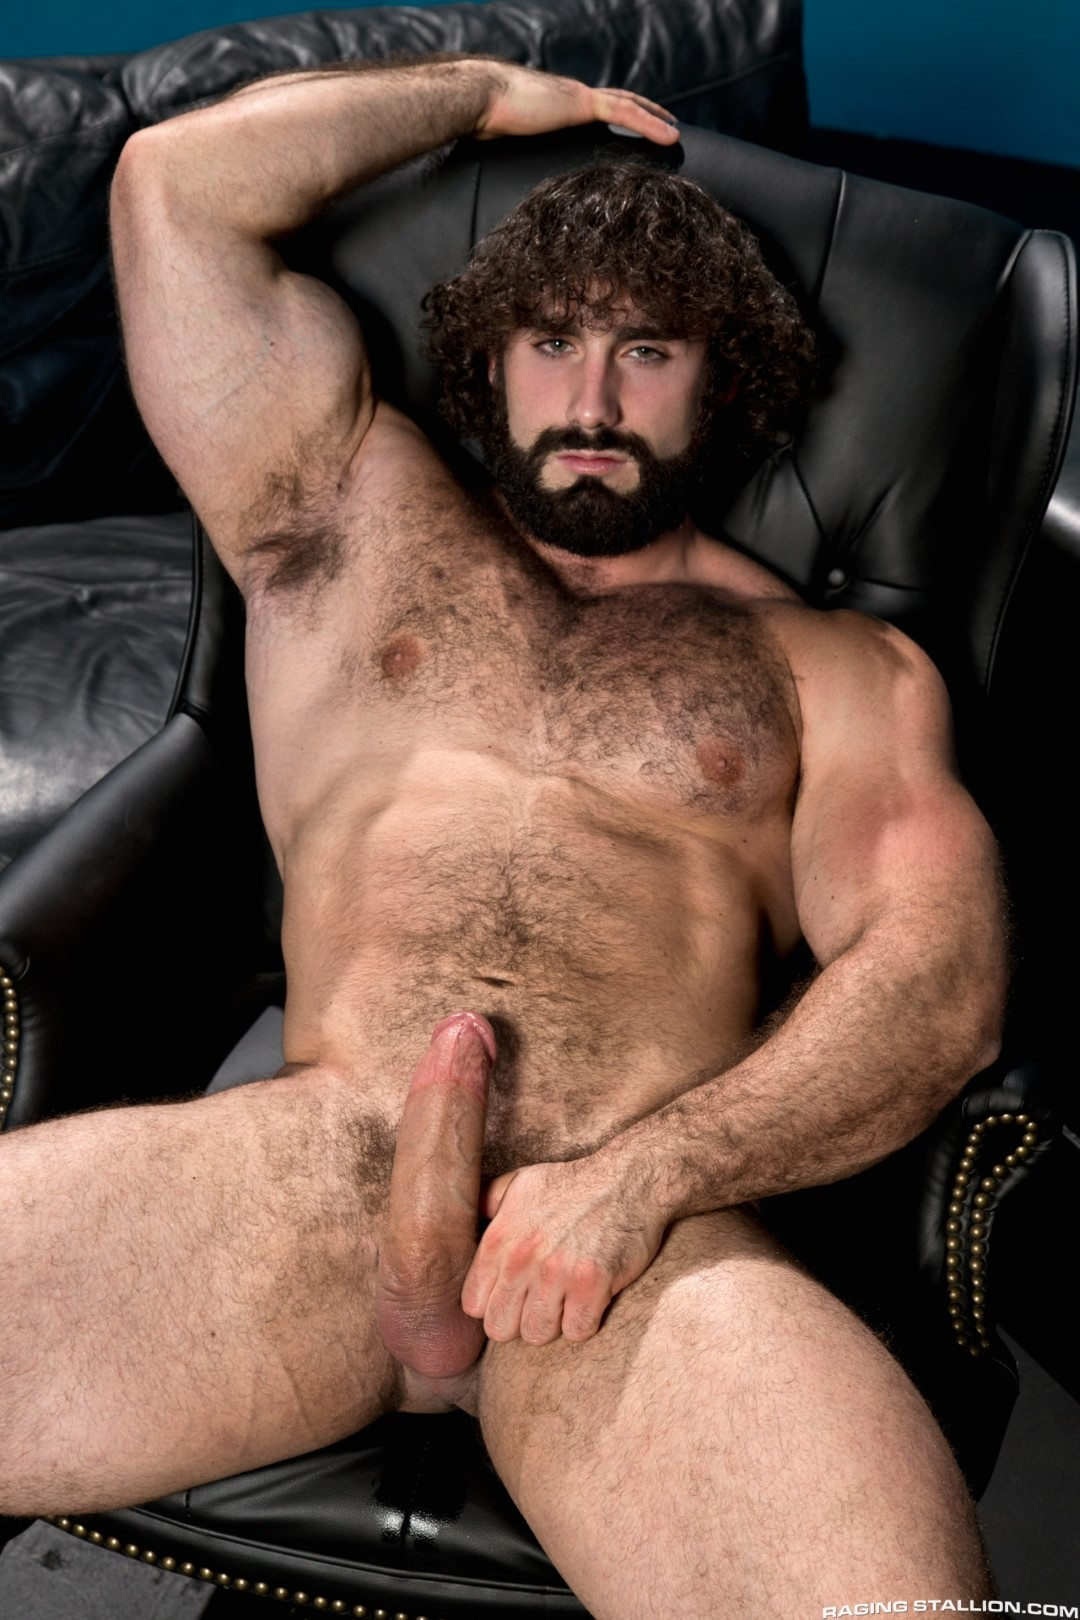 Raging-Stallion-Johnny-V-and-Jaxton-Wheeler-Hairy-Muscle-Hunk-Fucking-Amateur-Gay-Porn-06 Hairy Muscle Hunk Jaxton Wheeler Fucking A Muscle Jock